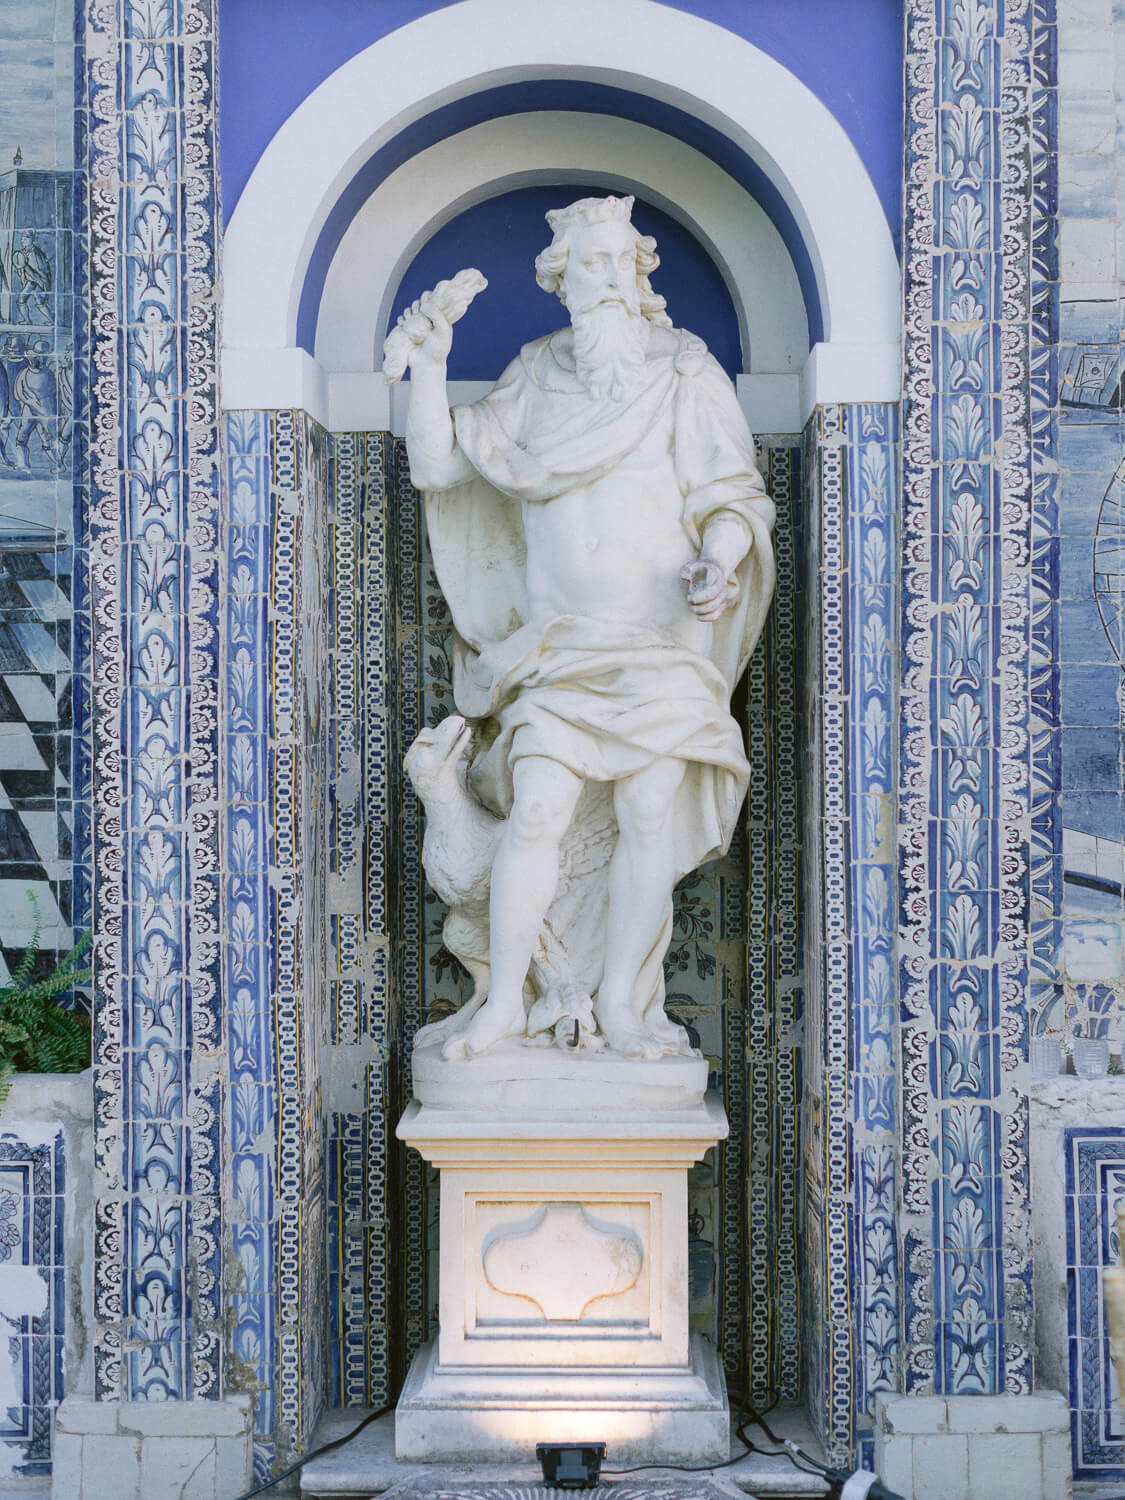 sumptuous statue in a niche arch covered with Portuguese tiles in Marques de Fronteira Palace by Portugal Wedding Photographer